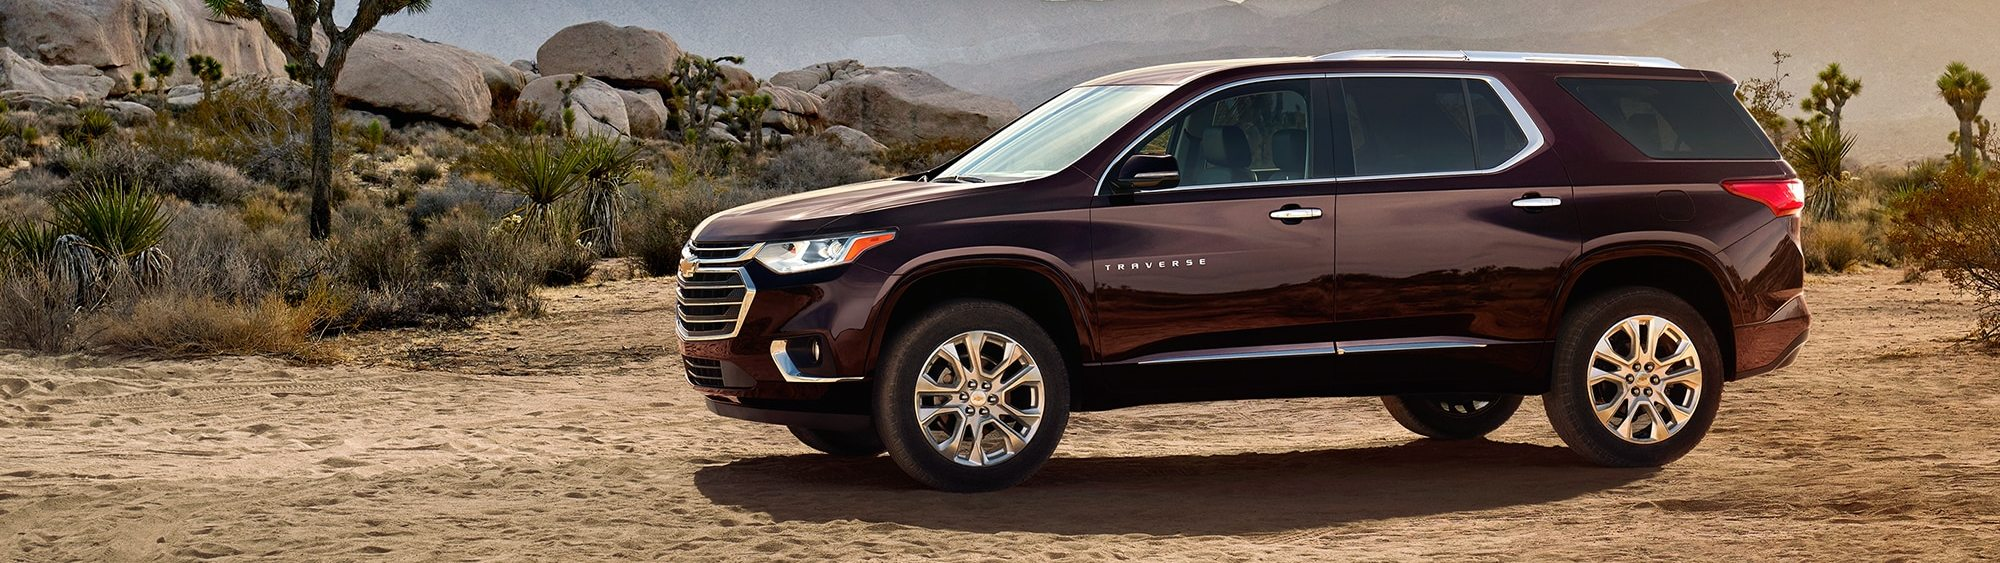 2020 Chevrolet Traverse for Sale near Alma, MI